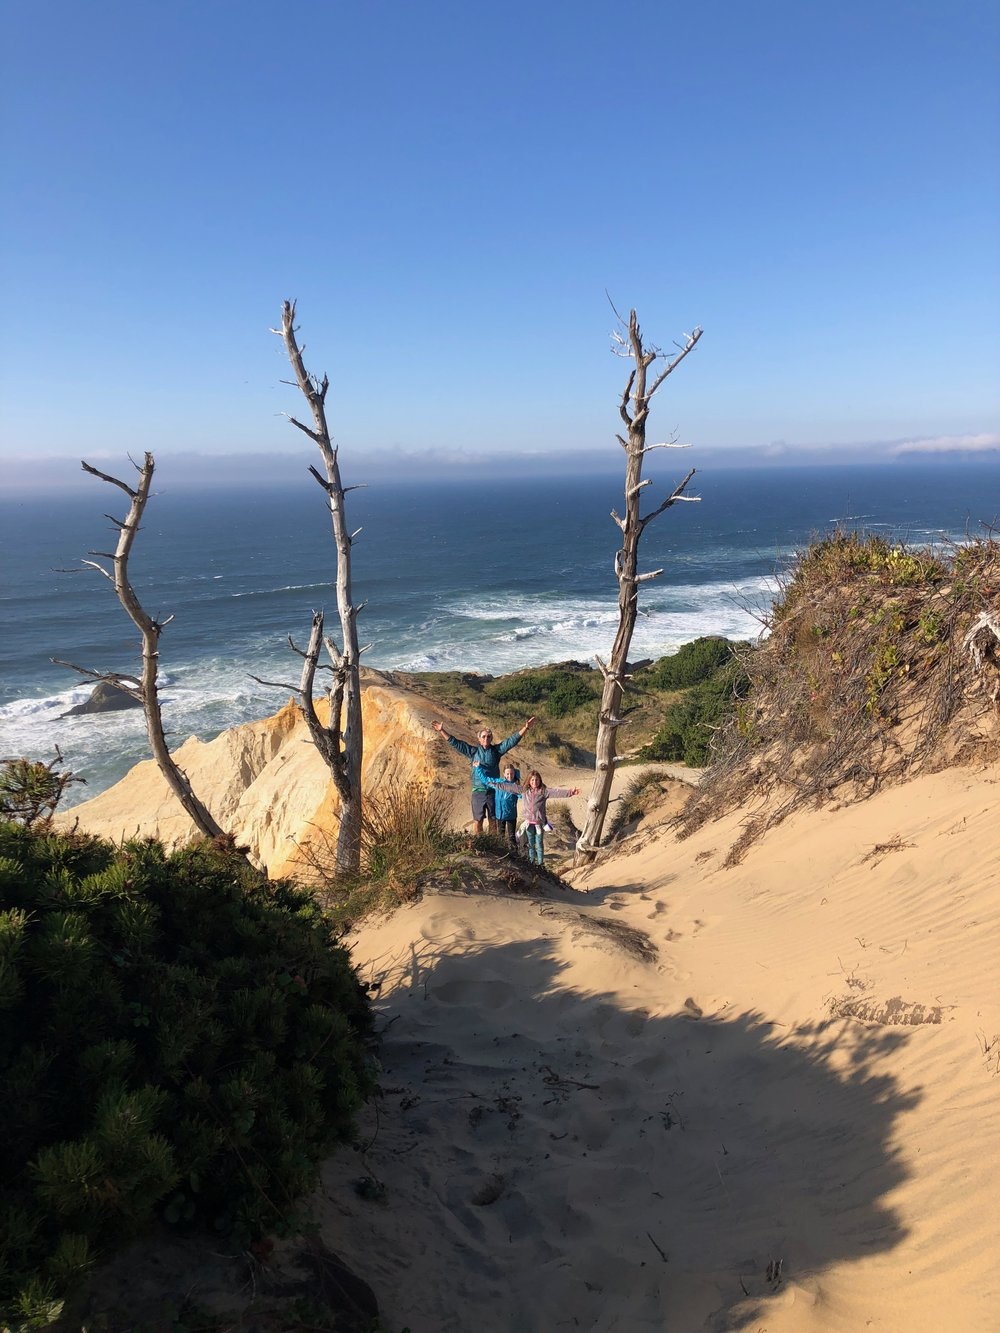 We climbed up and over the dunes to start our hike